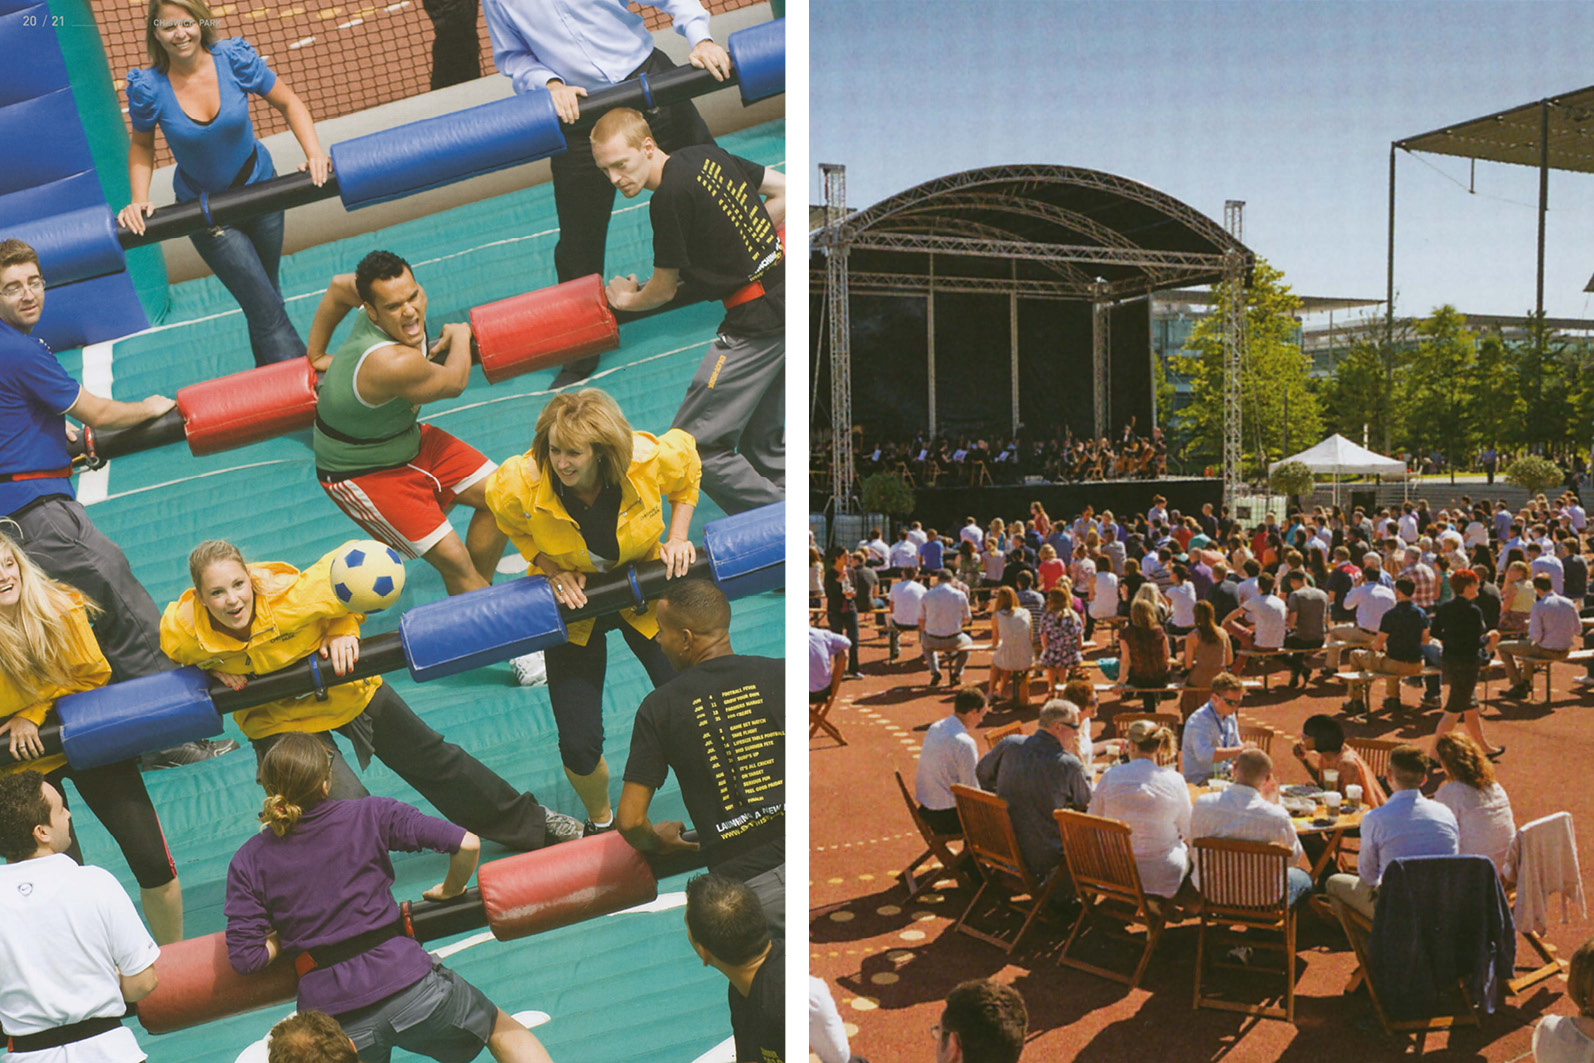 Chiswick Park - Enjoy work - activities invlude tehatre and music poerformaces. Human table football